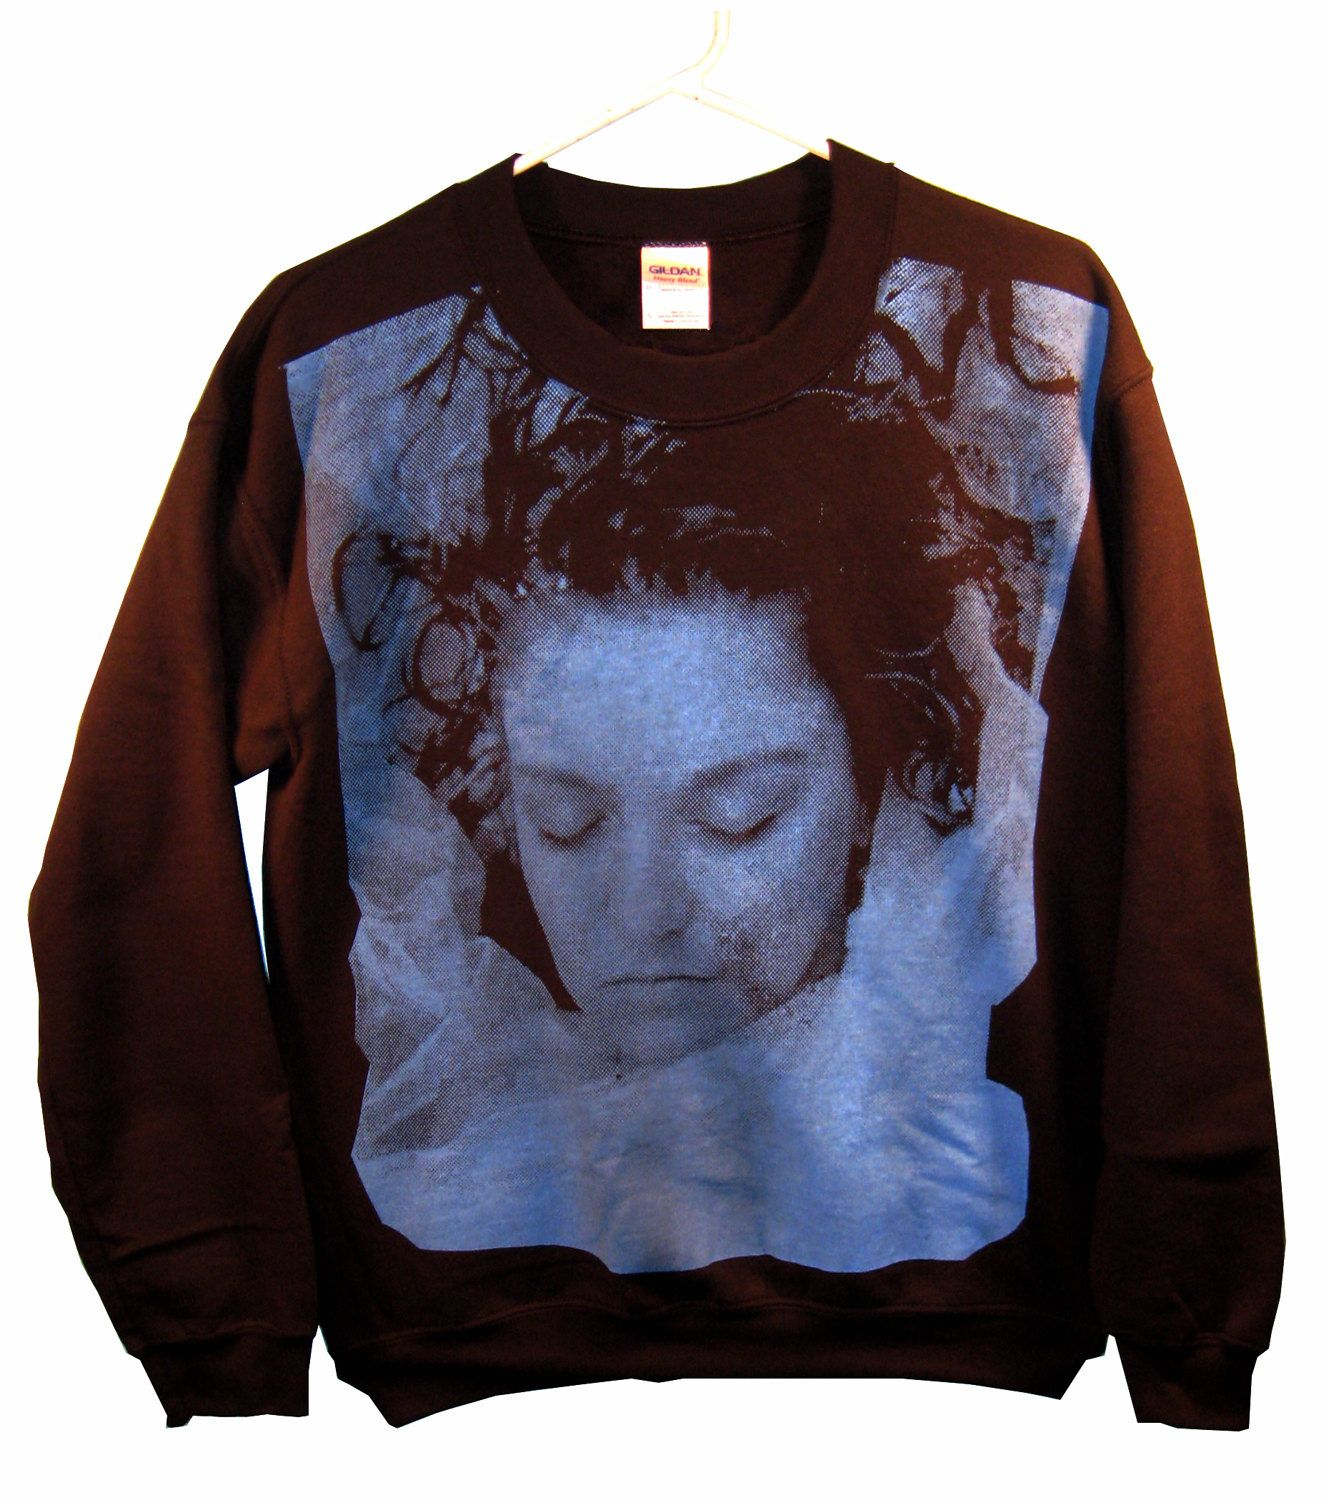 Twin Peaks: Laura Palmer Unisex Sweatshirt sizes S-M-L-XL QpaFZQKtSf